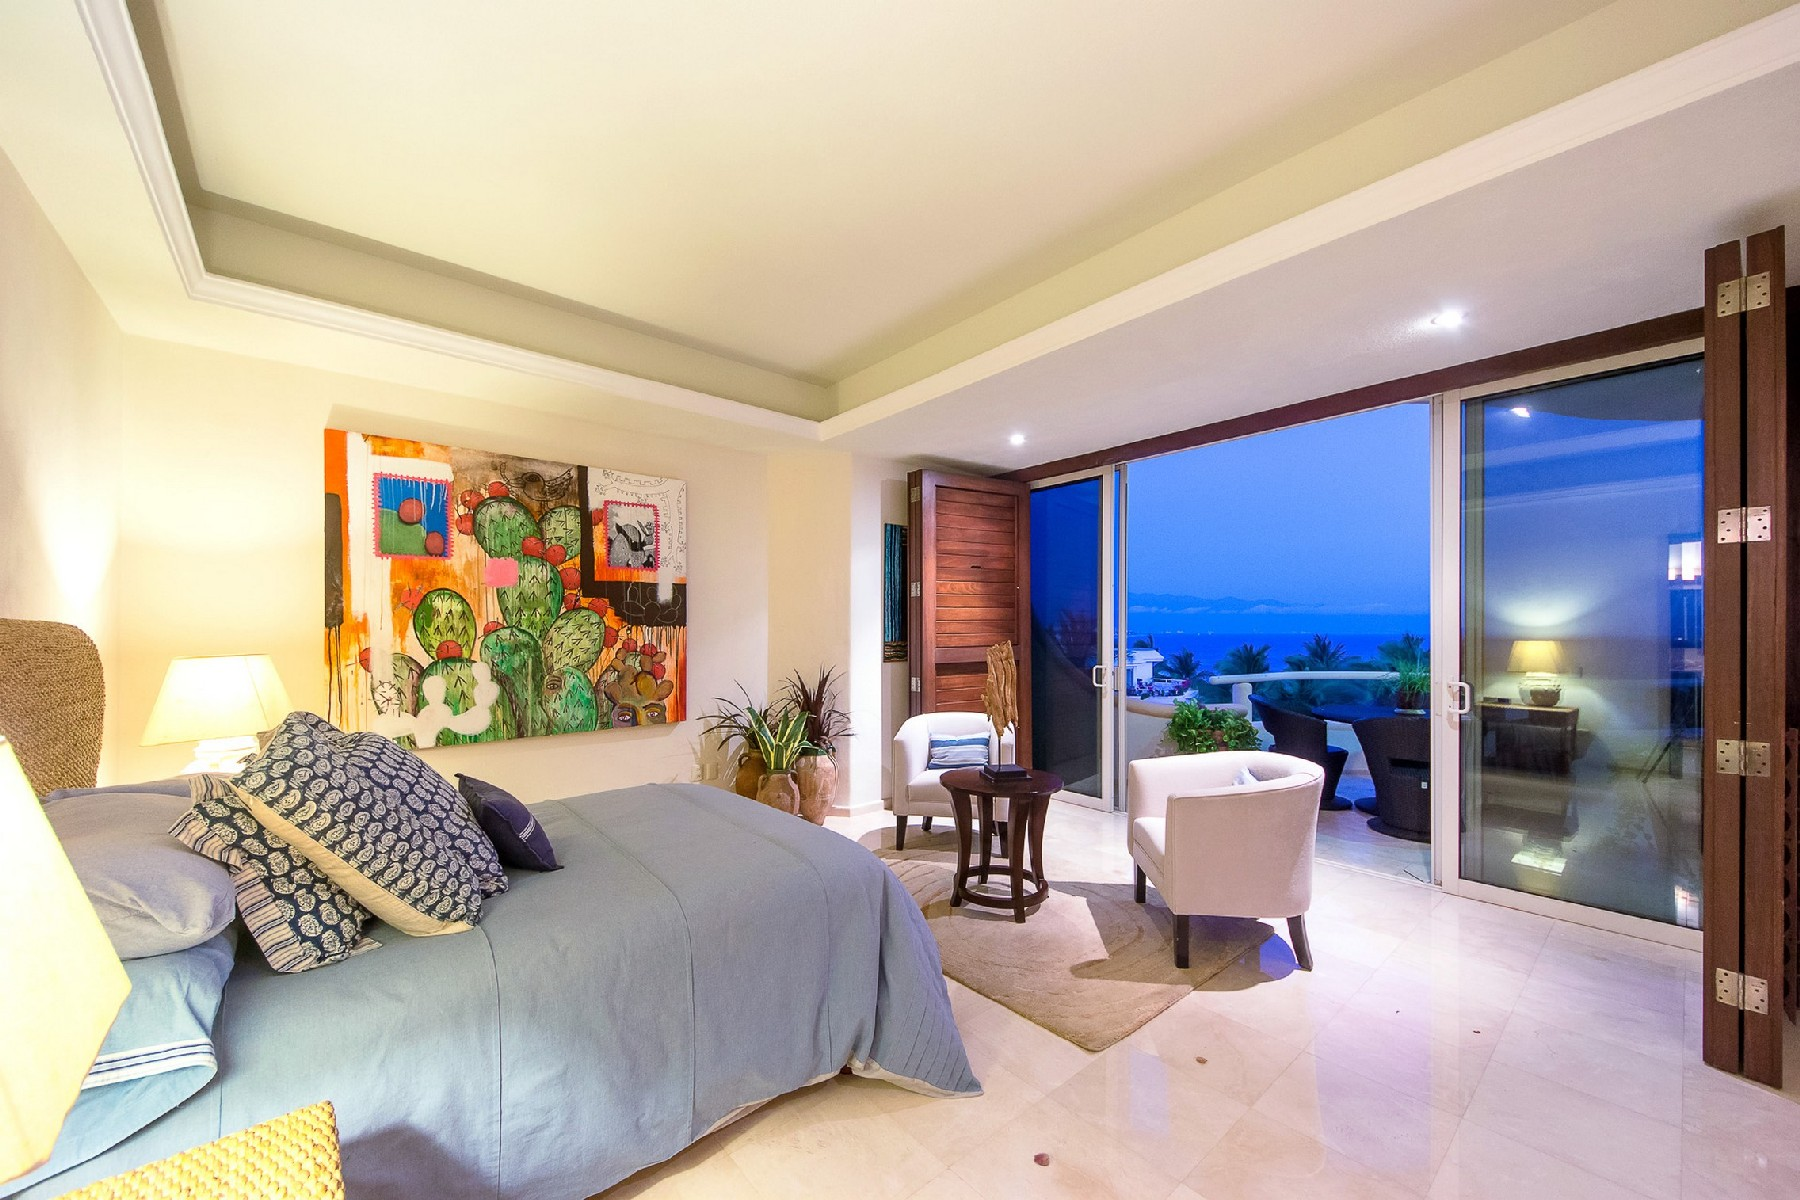 Additional photo for property listing at Quinta del Mar II PH 602 Puerto Vallarta, Jalisco Mexico